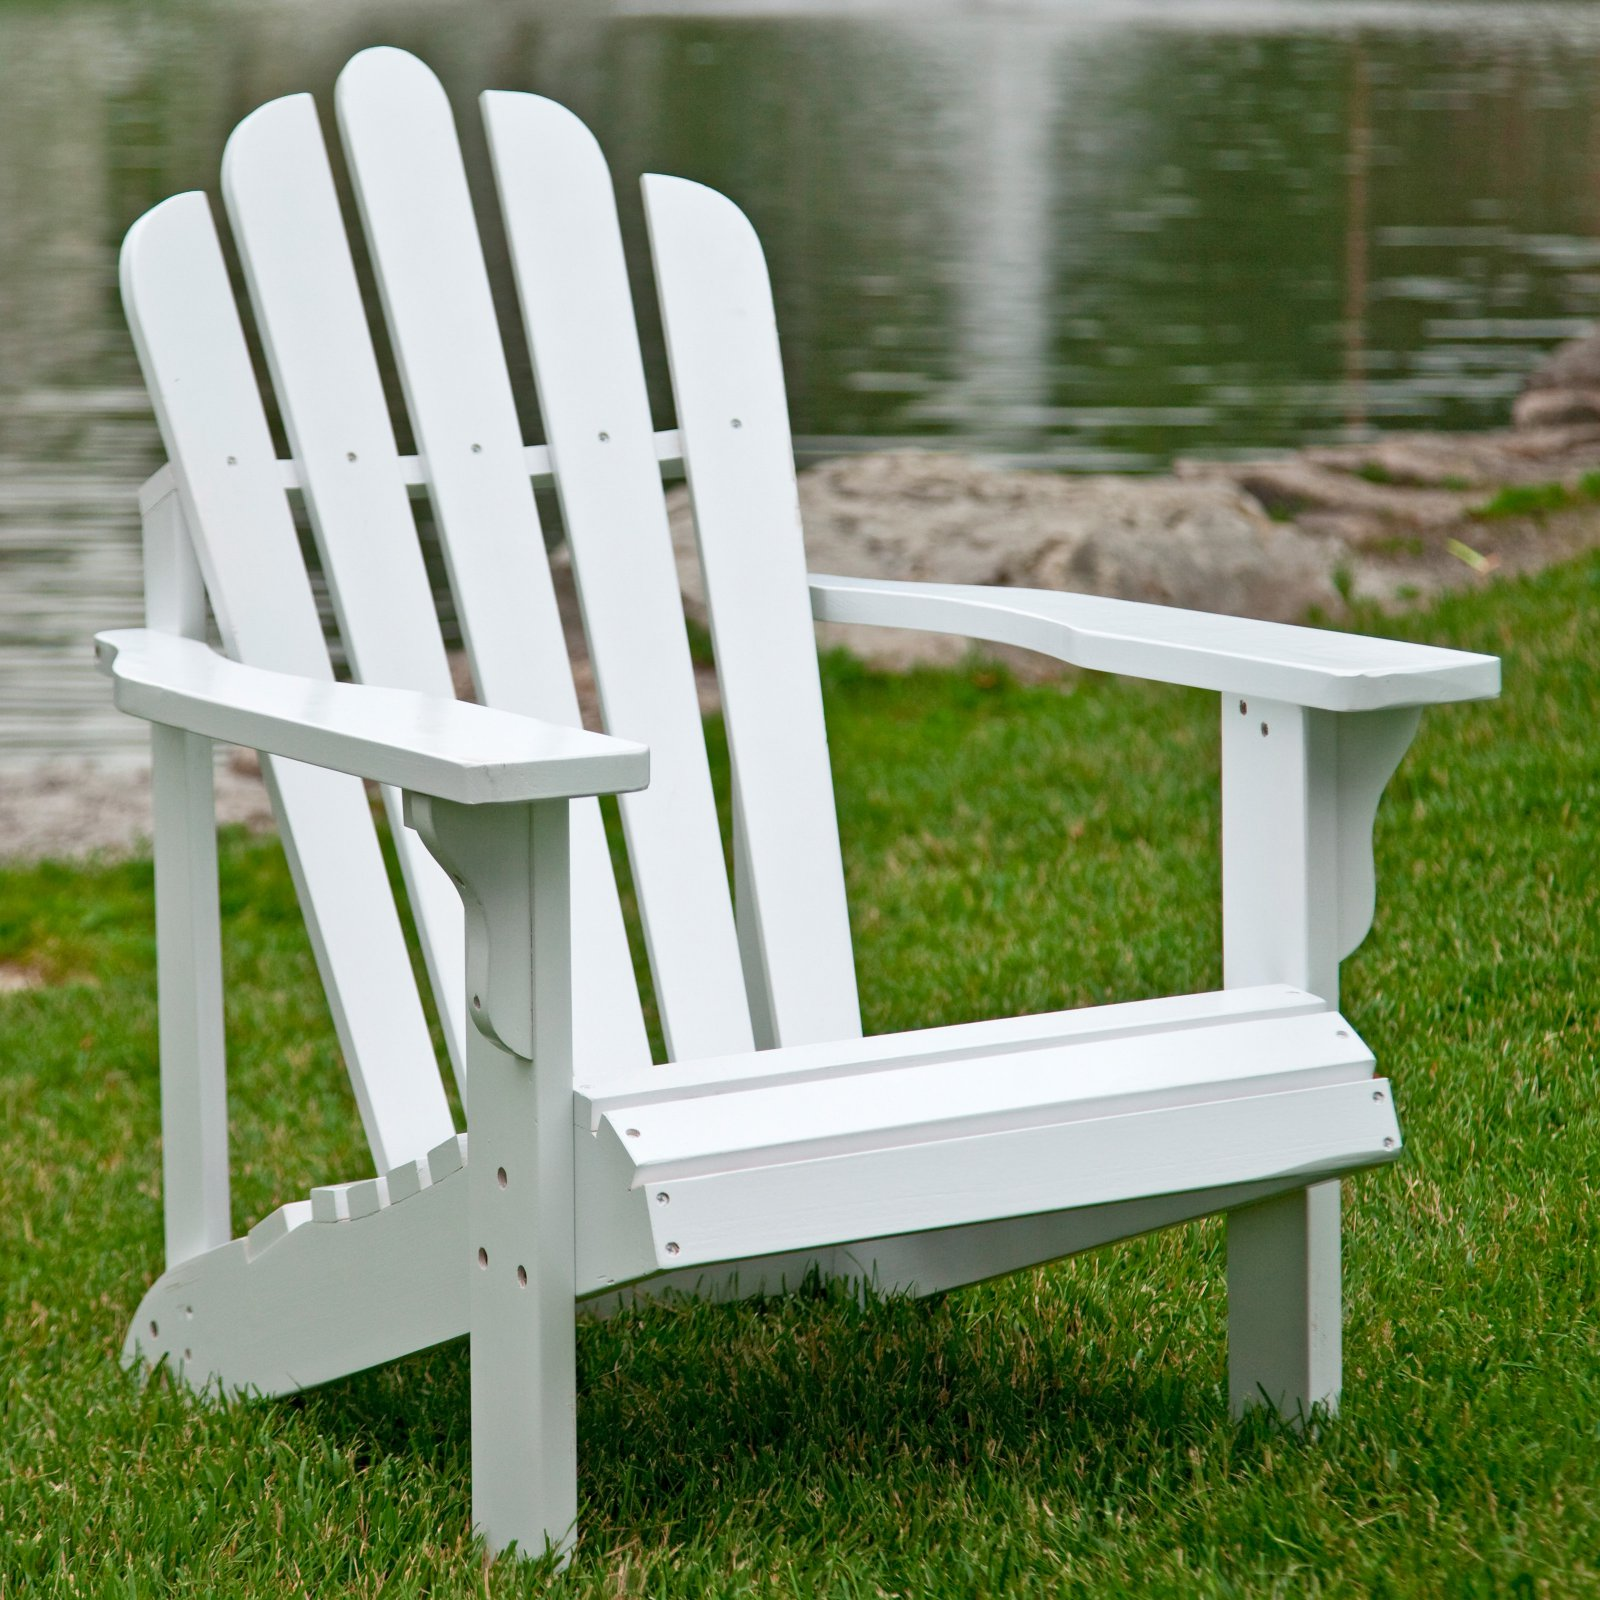 Westport Adirondack Chair, Natural Cedar Wood - White